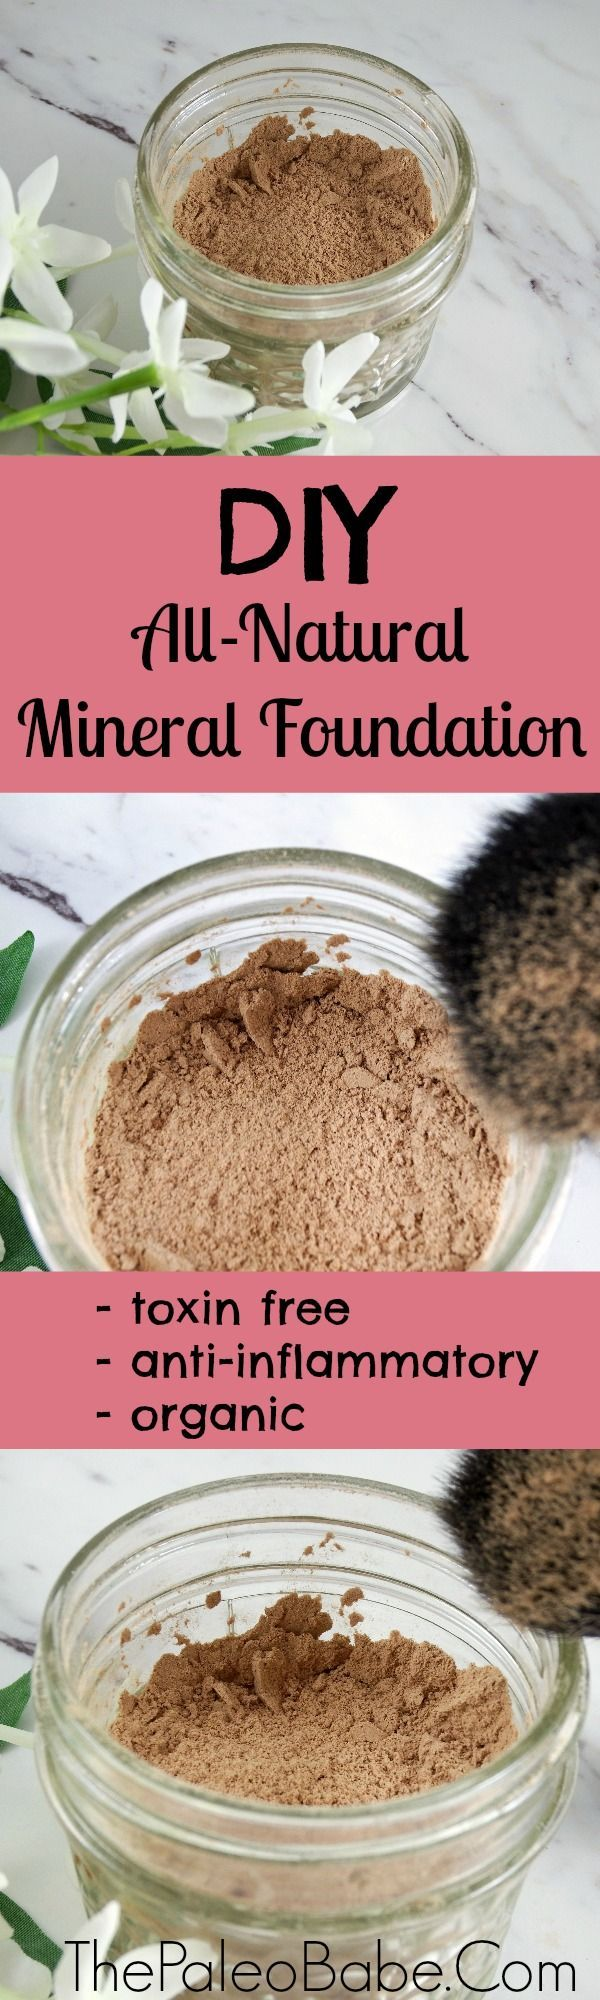 make your own diy natural mineral loose powder foundation out of